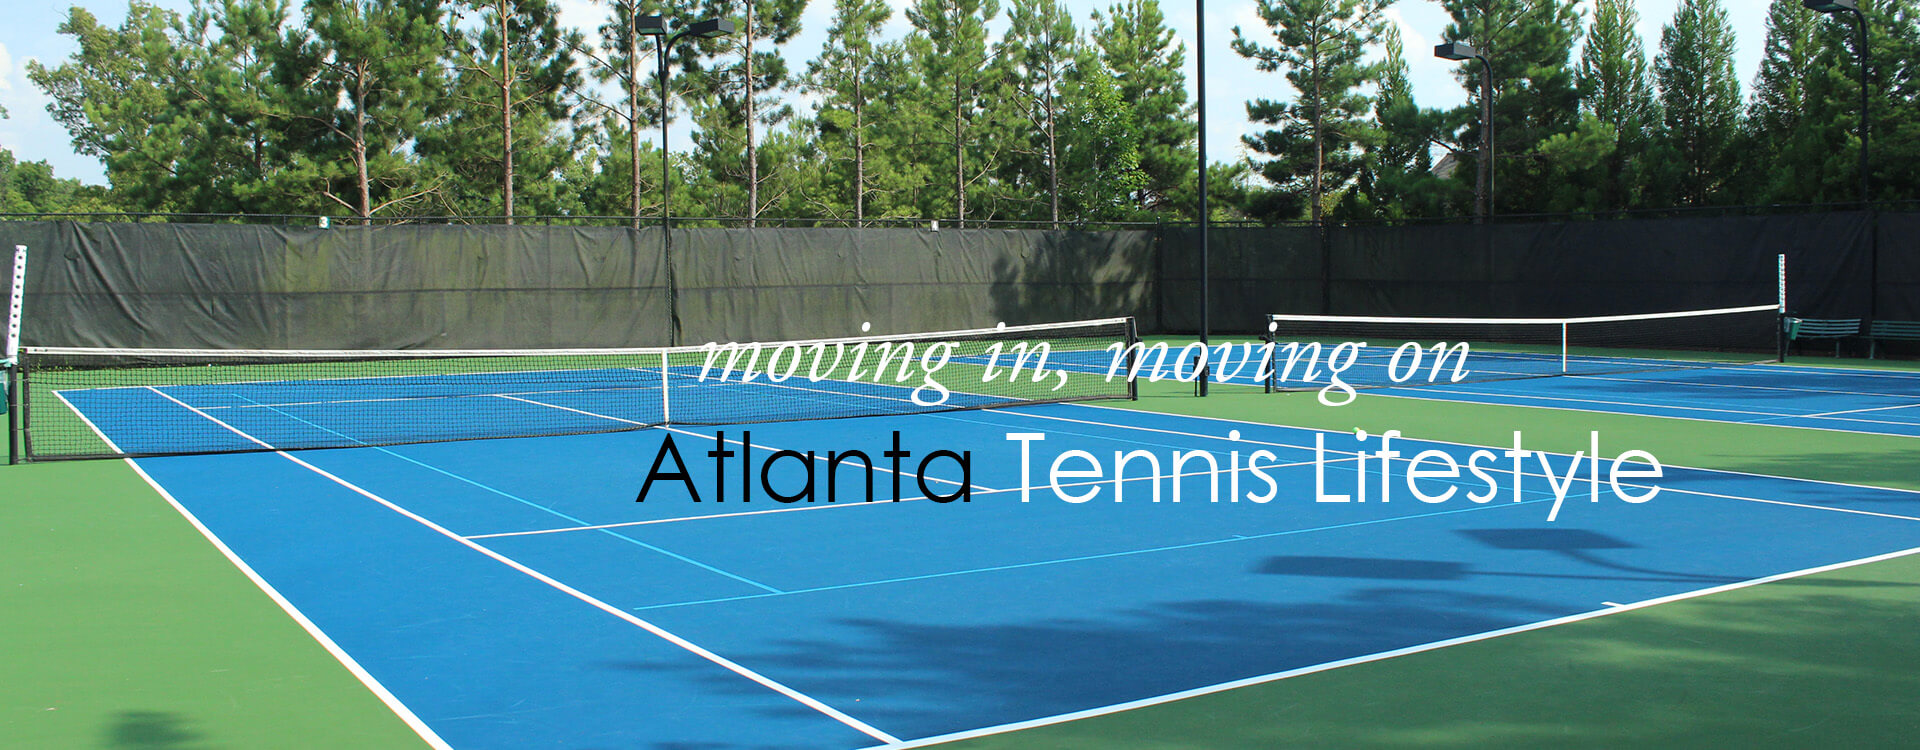 Atlanta Swim Tennis Lifestyle - The Jeff Buffo Team